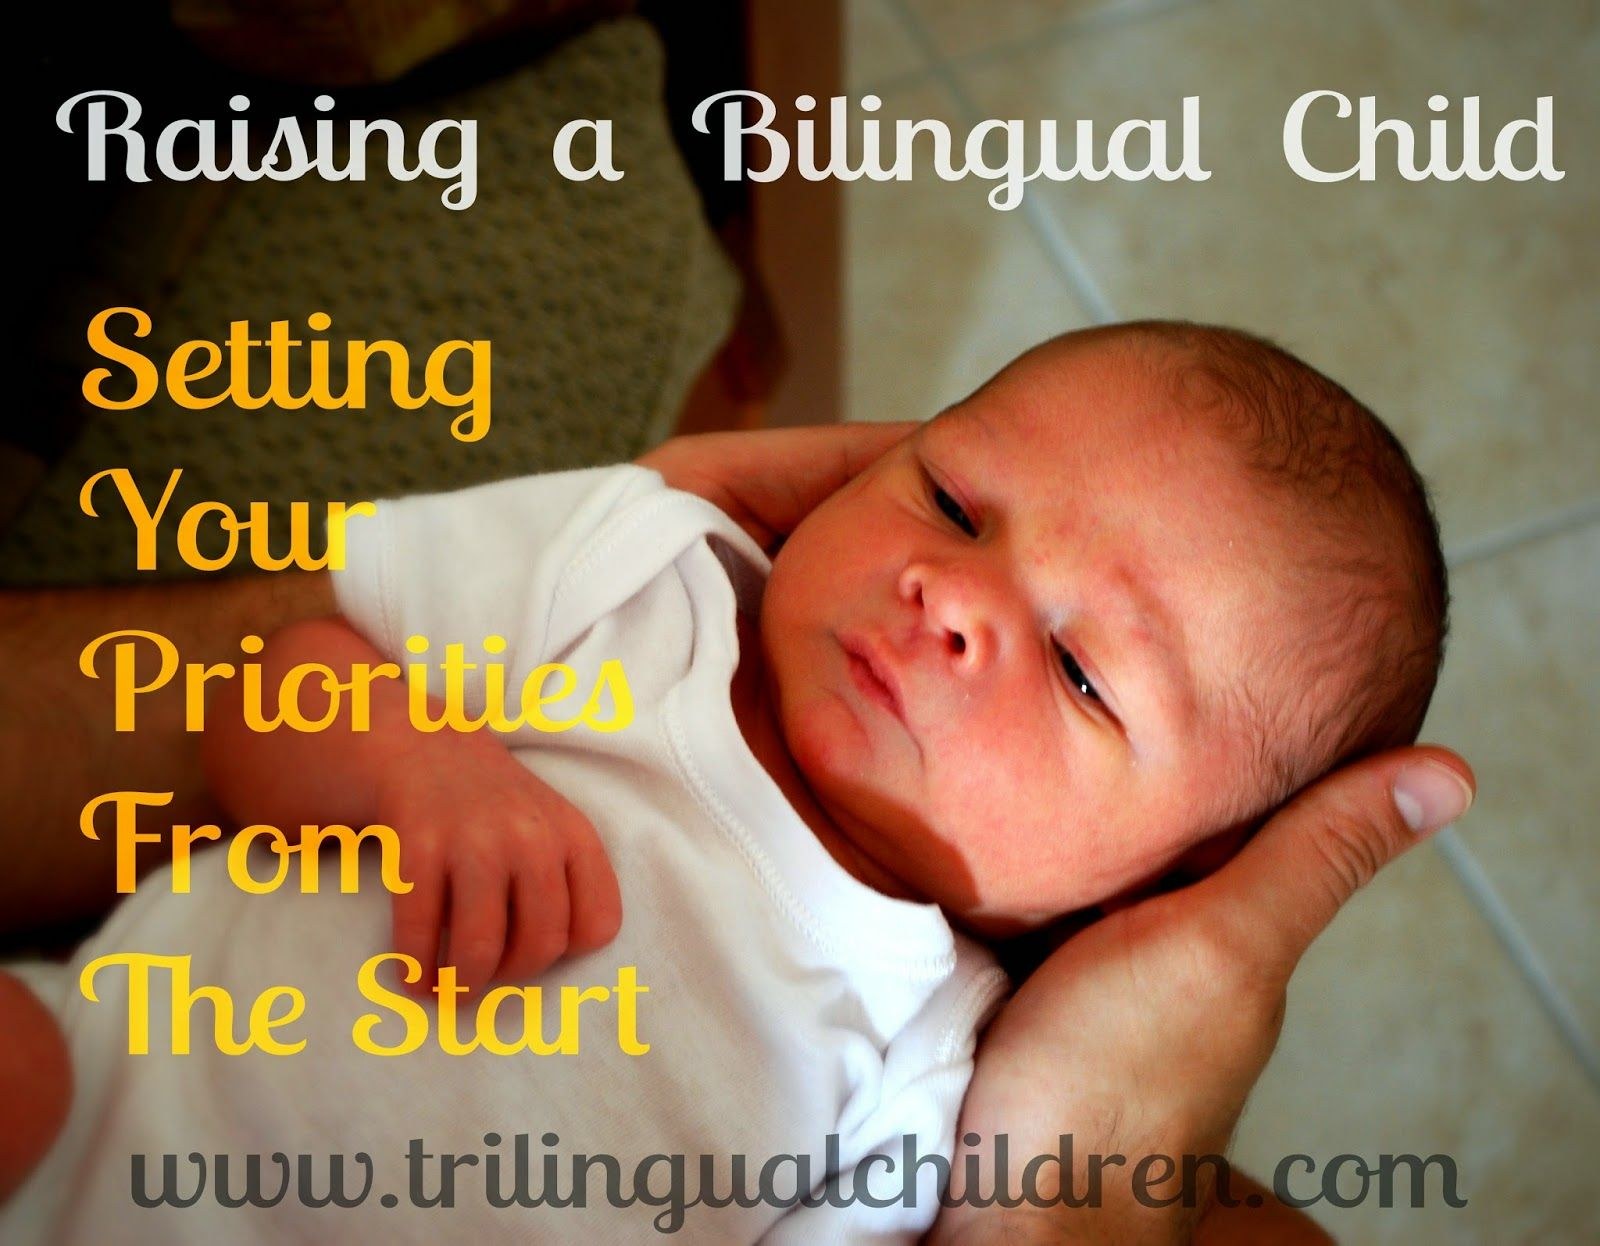 Raising a Trilingual Child: Raising a Bilingual Child : Setting Your Priorities From The Start.